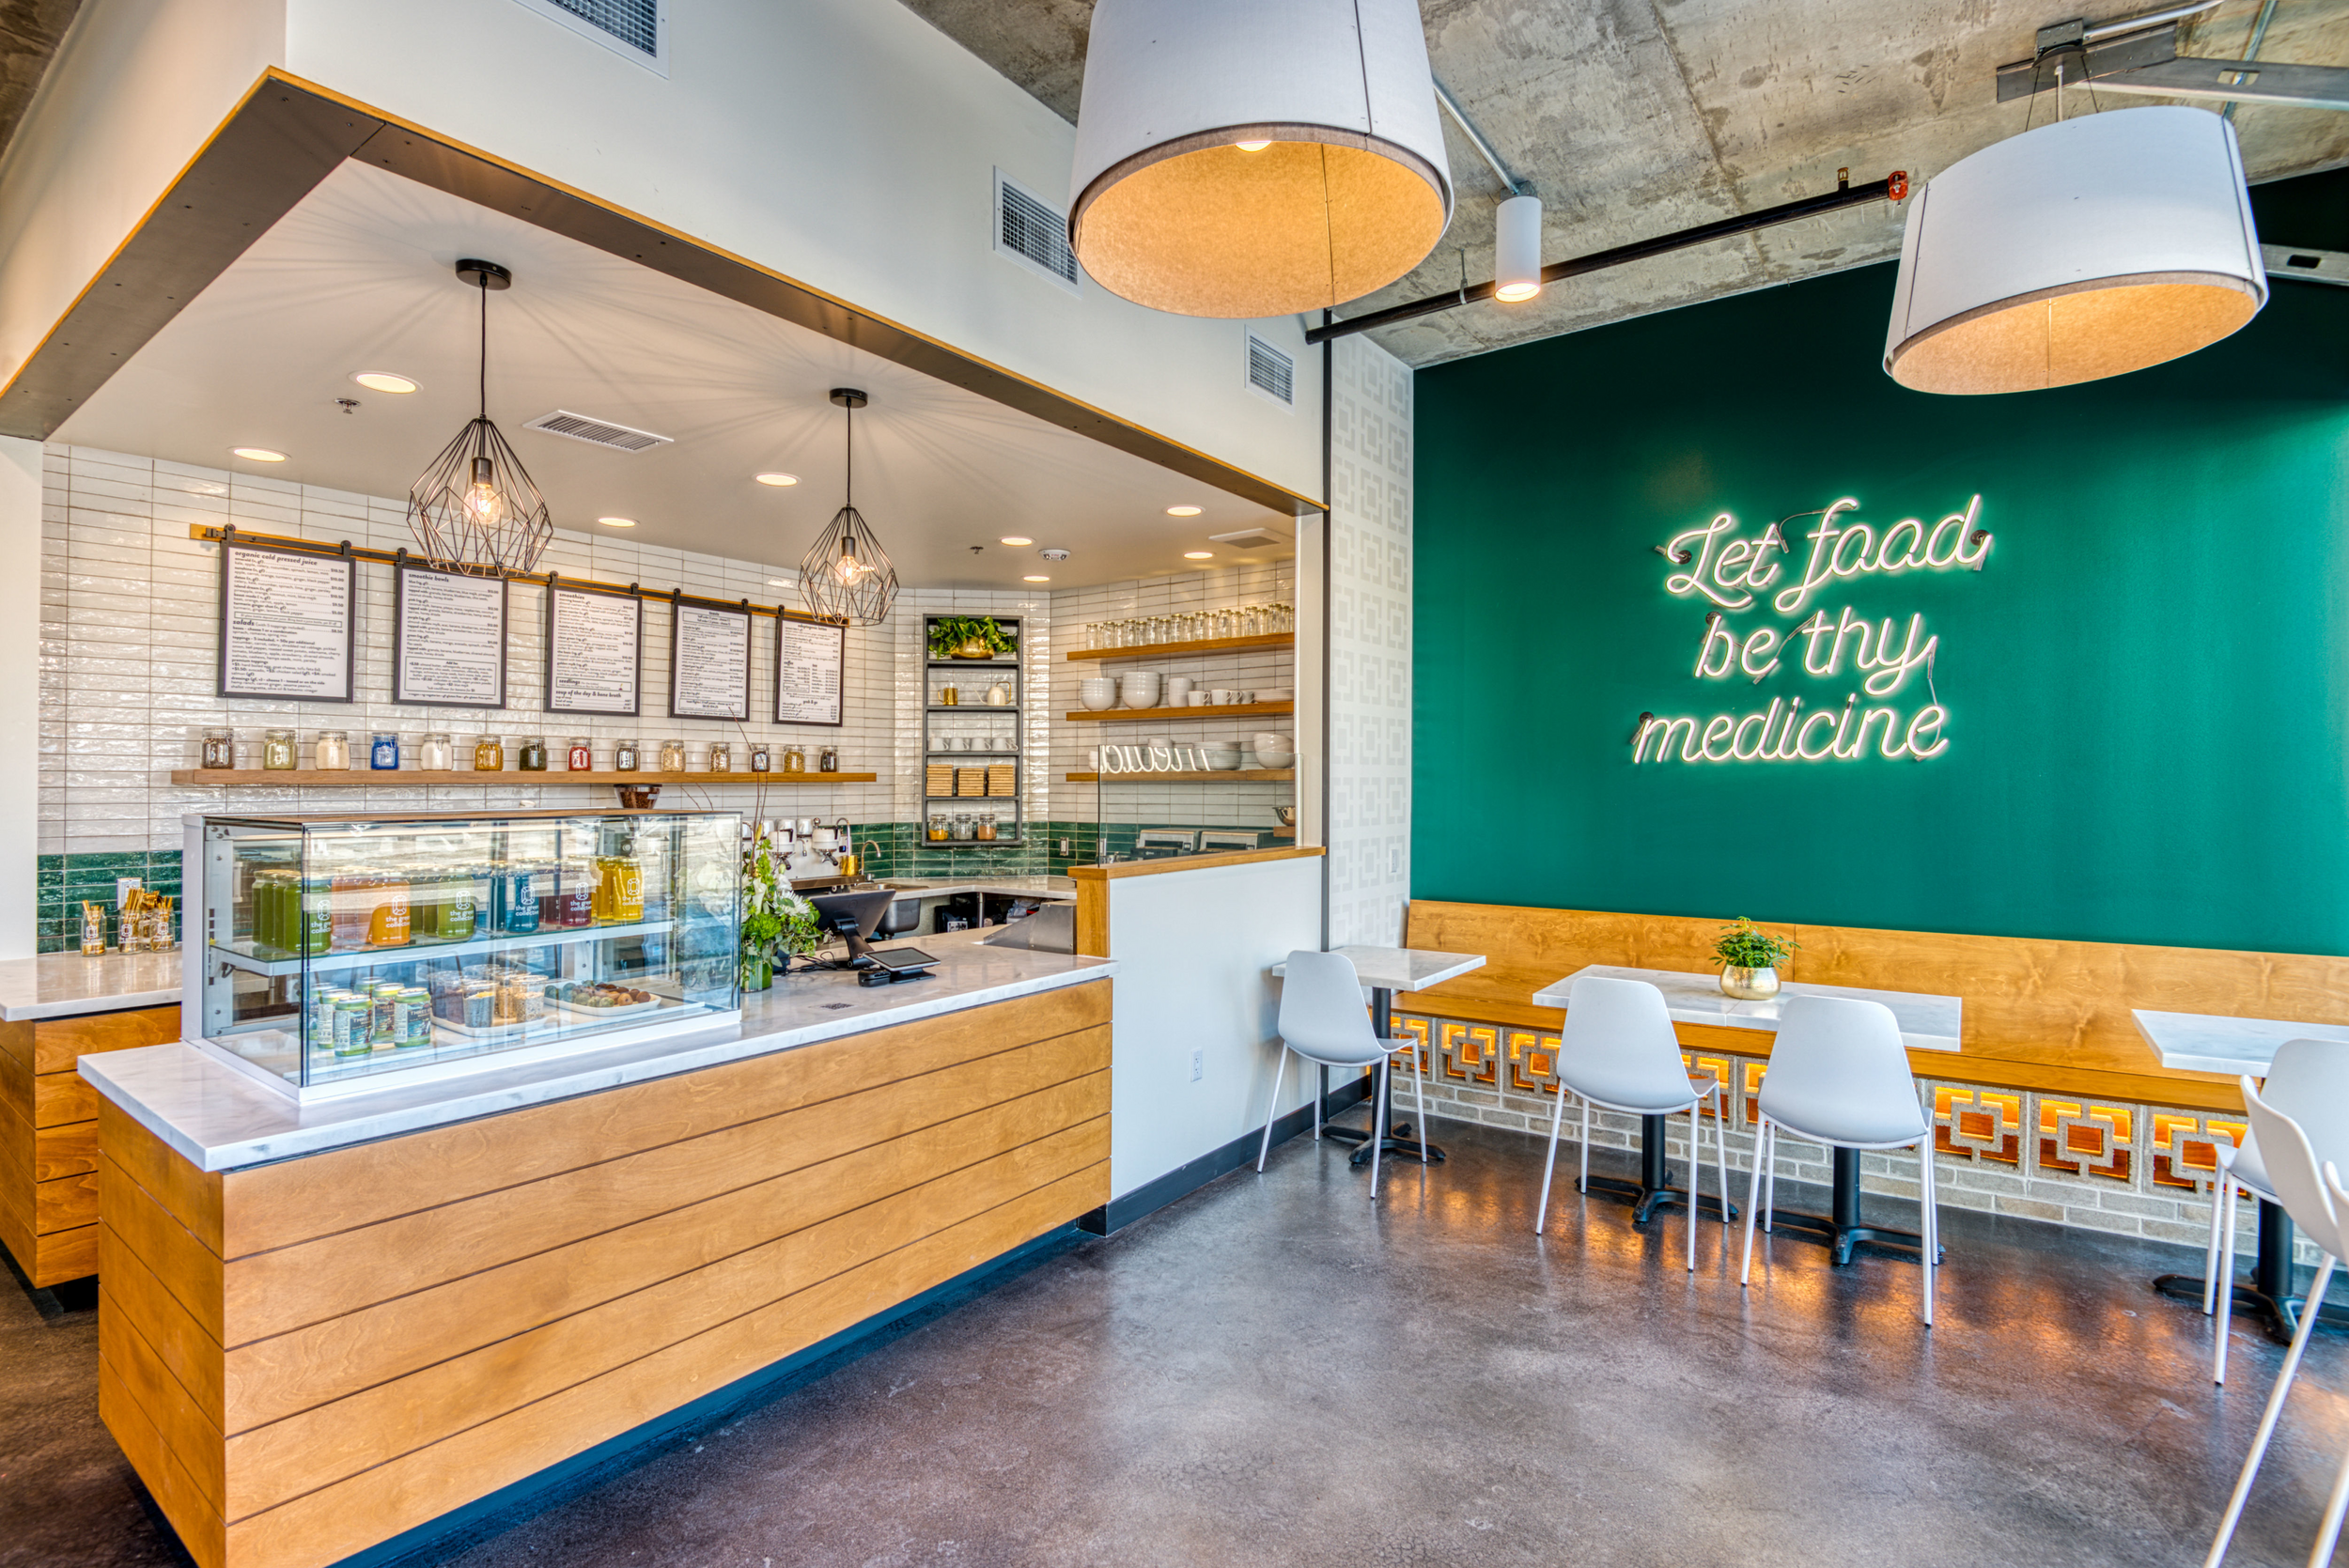 The Green Collective Eatery